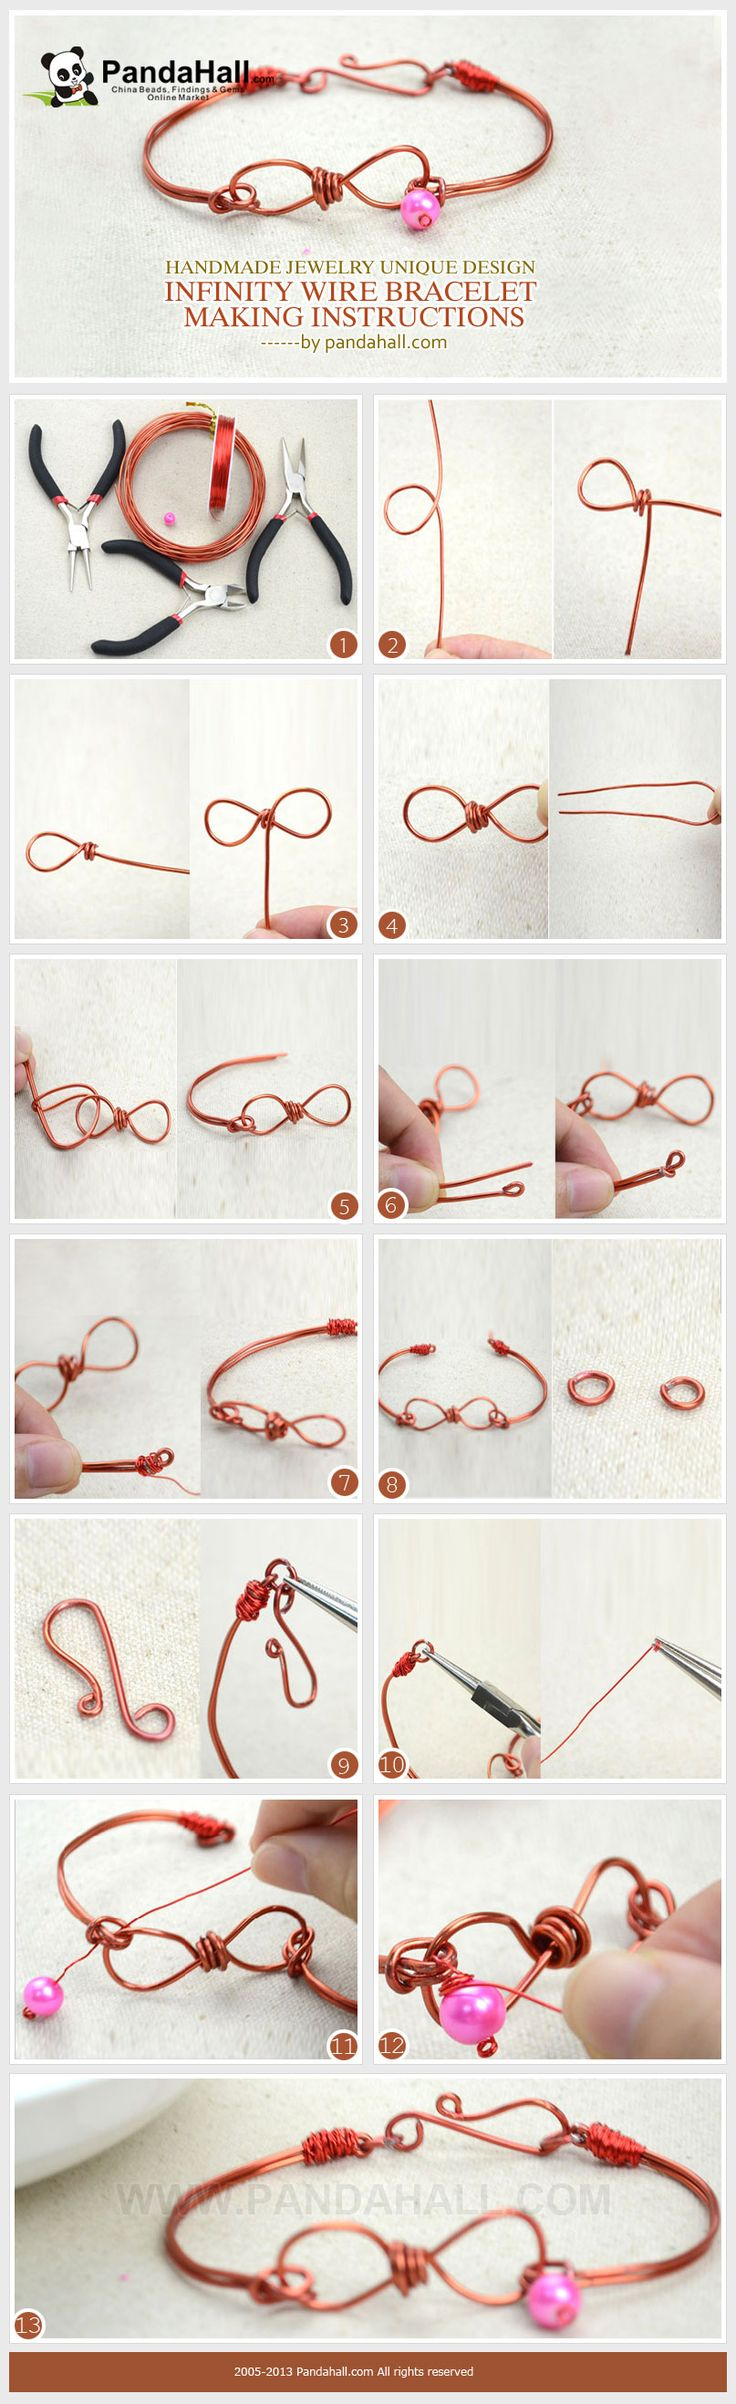 This handmade jewelry unique in style is created by us and we hope you enjoy this infinity wire bracelet making instructions. | DIY | Pinterest | Jewelry, Hand…